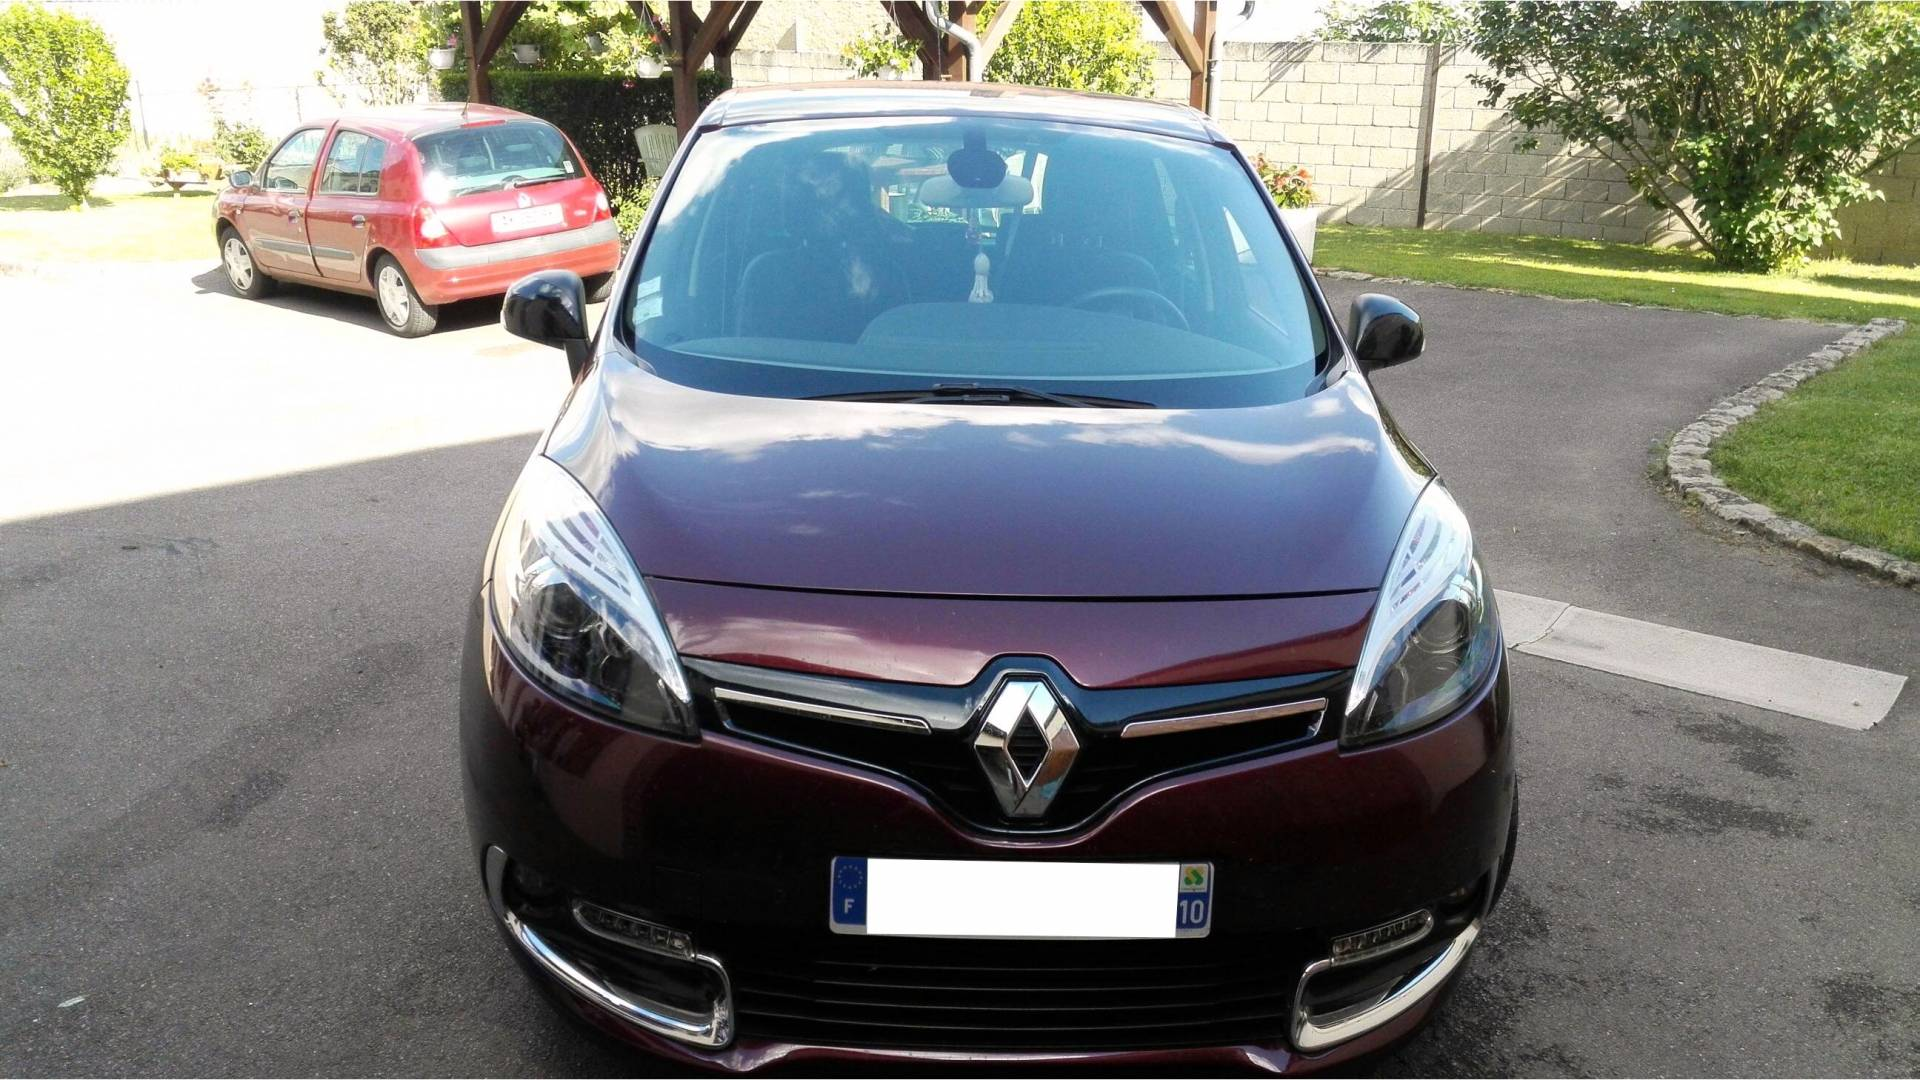 renault scenic d 39 occasion 1 6 dci 130 energy bose edition troyes carizy. Black Bedroom Furniture Sets. Home Design Ideas